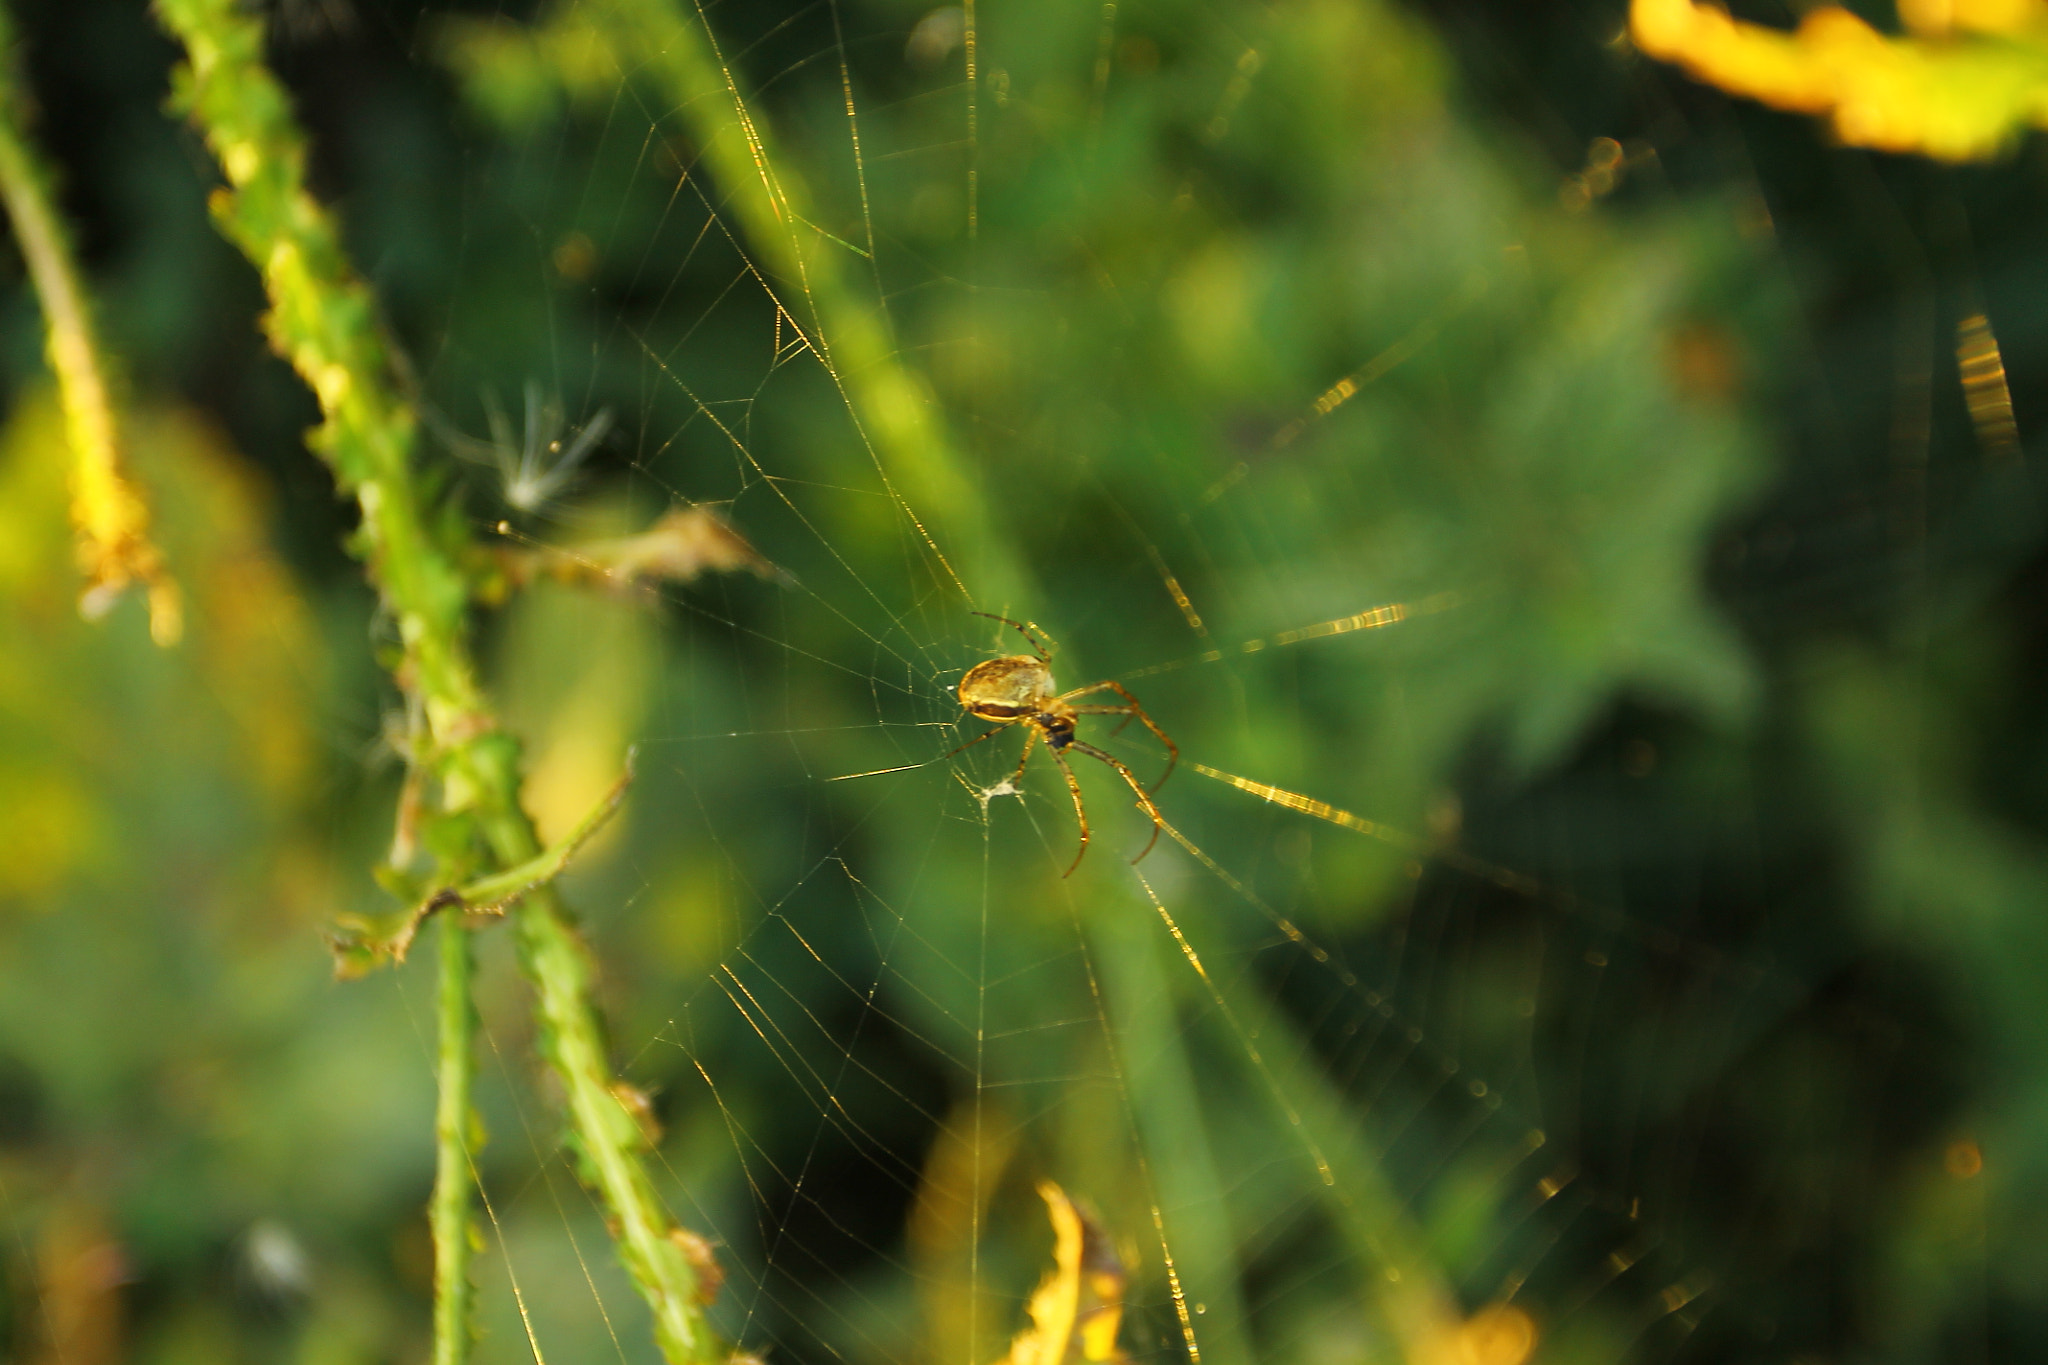 Photograph spiDeR by Manuel Stolle on 500px